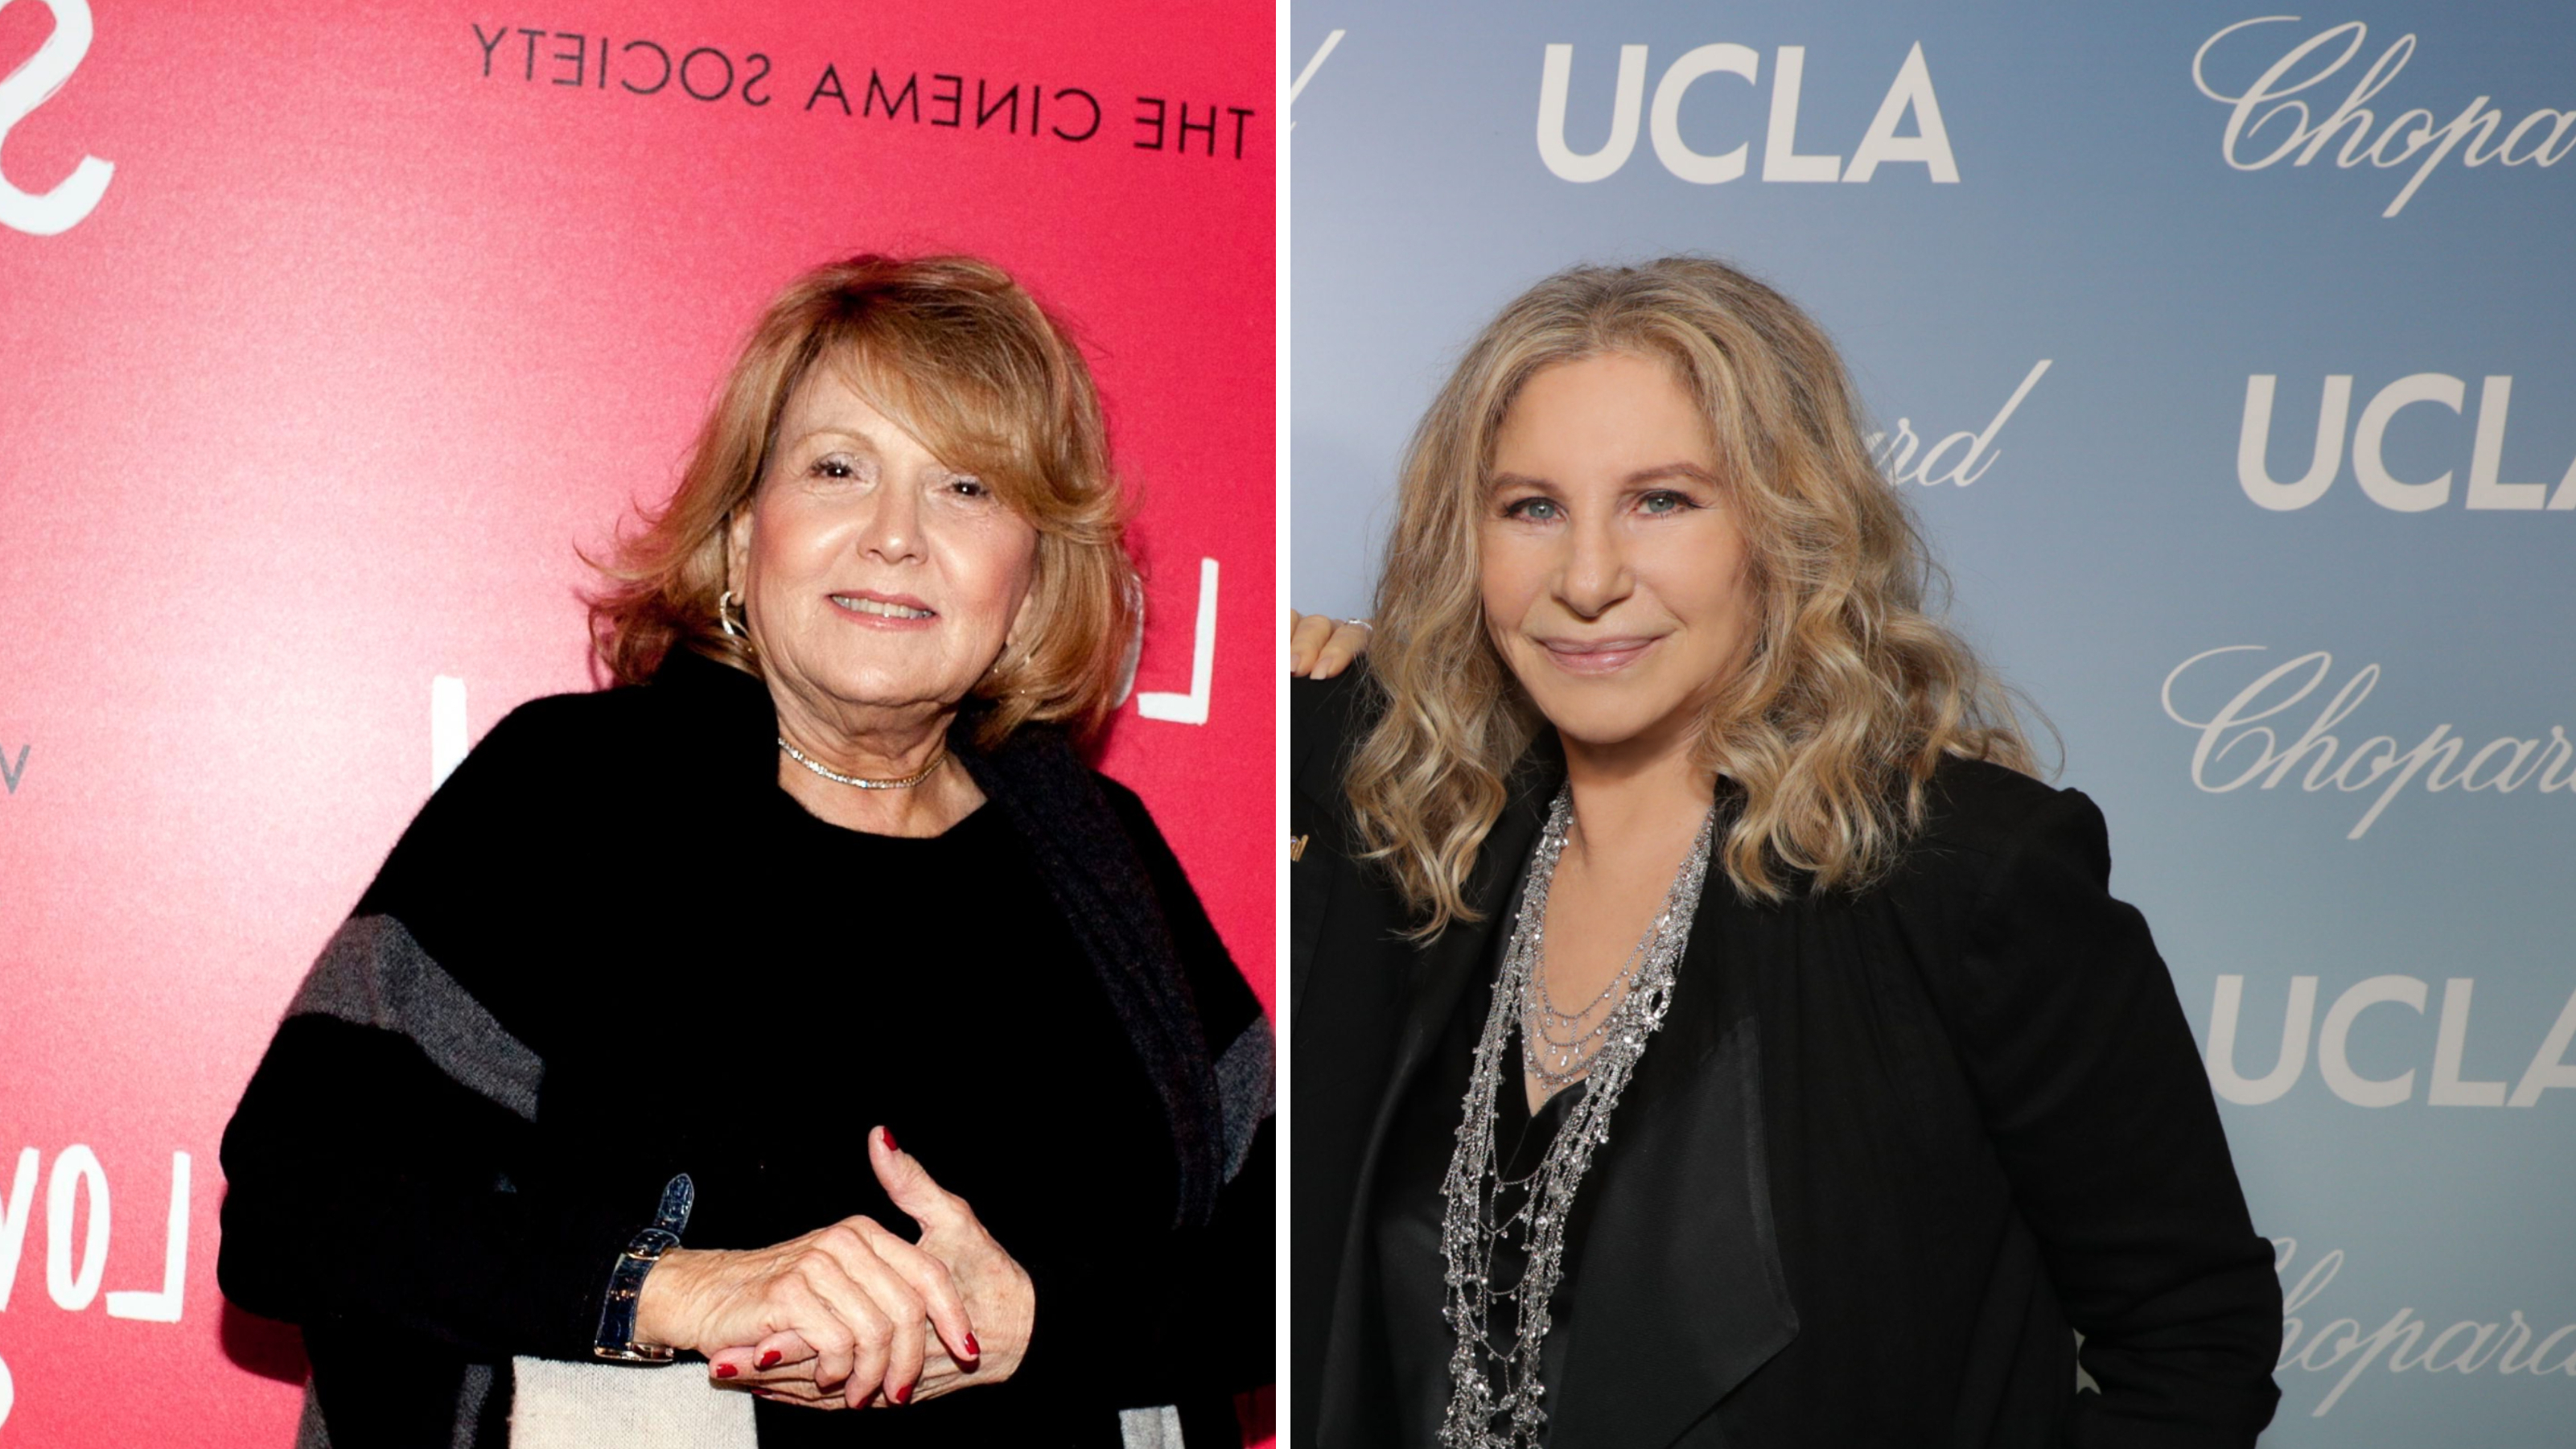 Brenda Vaccaro Talks Friendship With Longtime Pal Barbra Streisand: 'We Grew Up Together' on Broadway